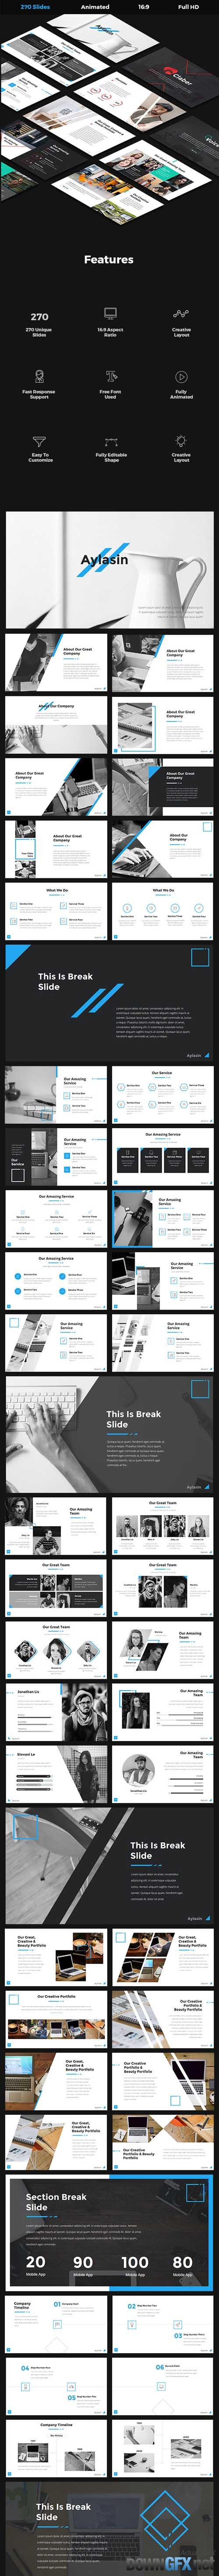 Bundle Powerpoint 20469499